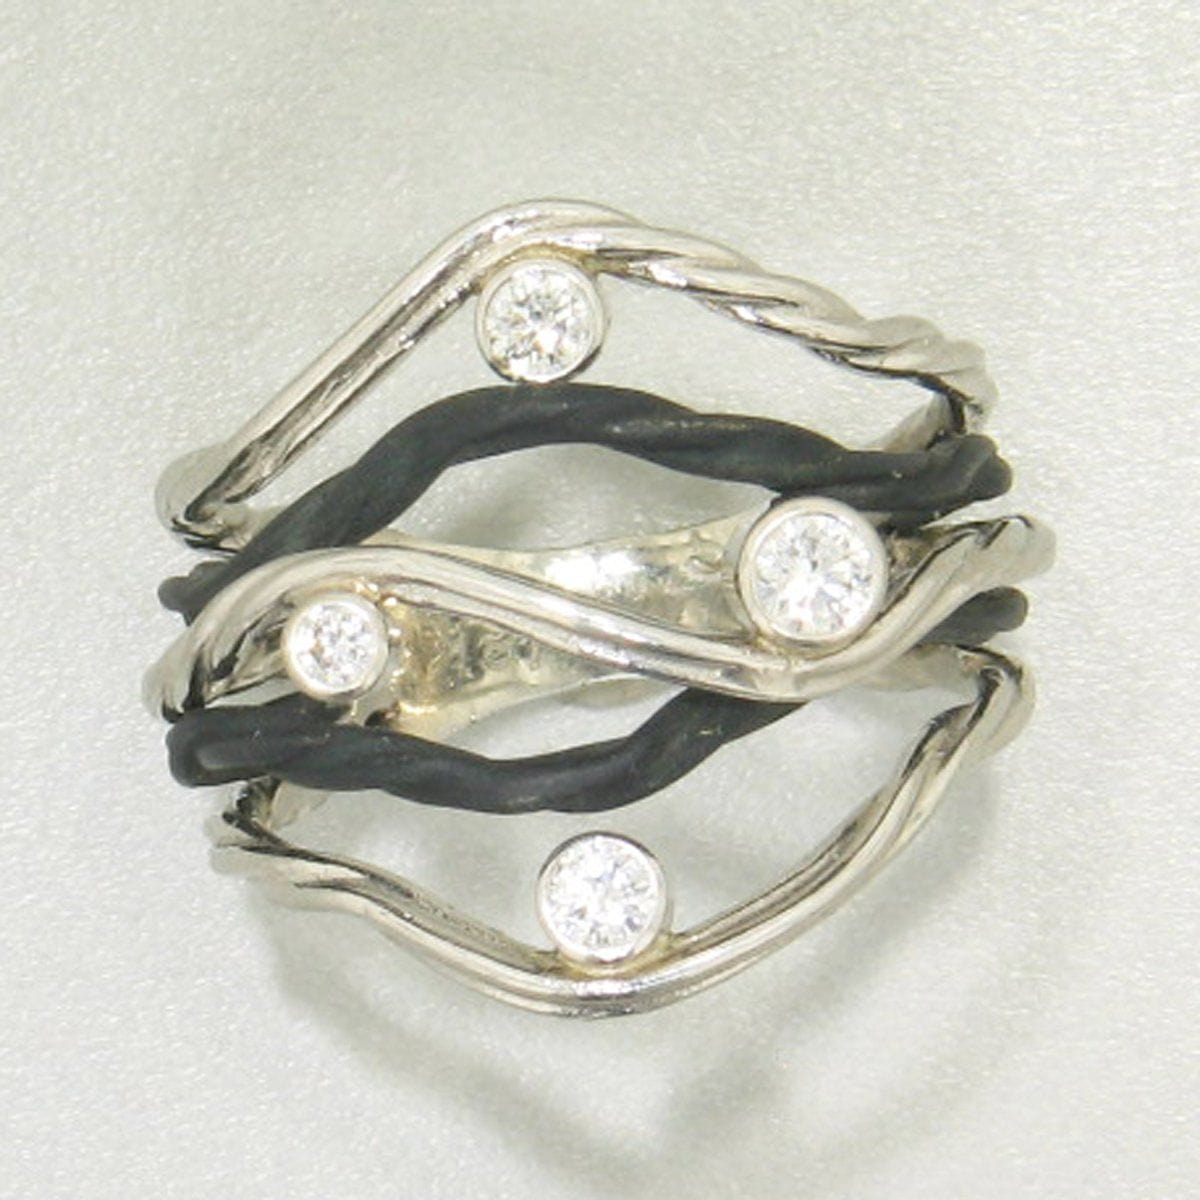 Clover Five Wire Ring - 44R1-1-1GS-WG/ST-Sarah Graham-Renee Taylor Gallery